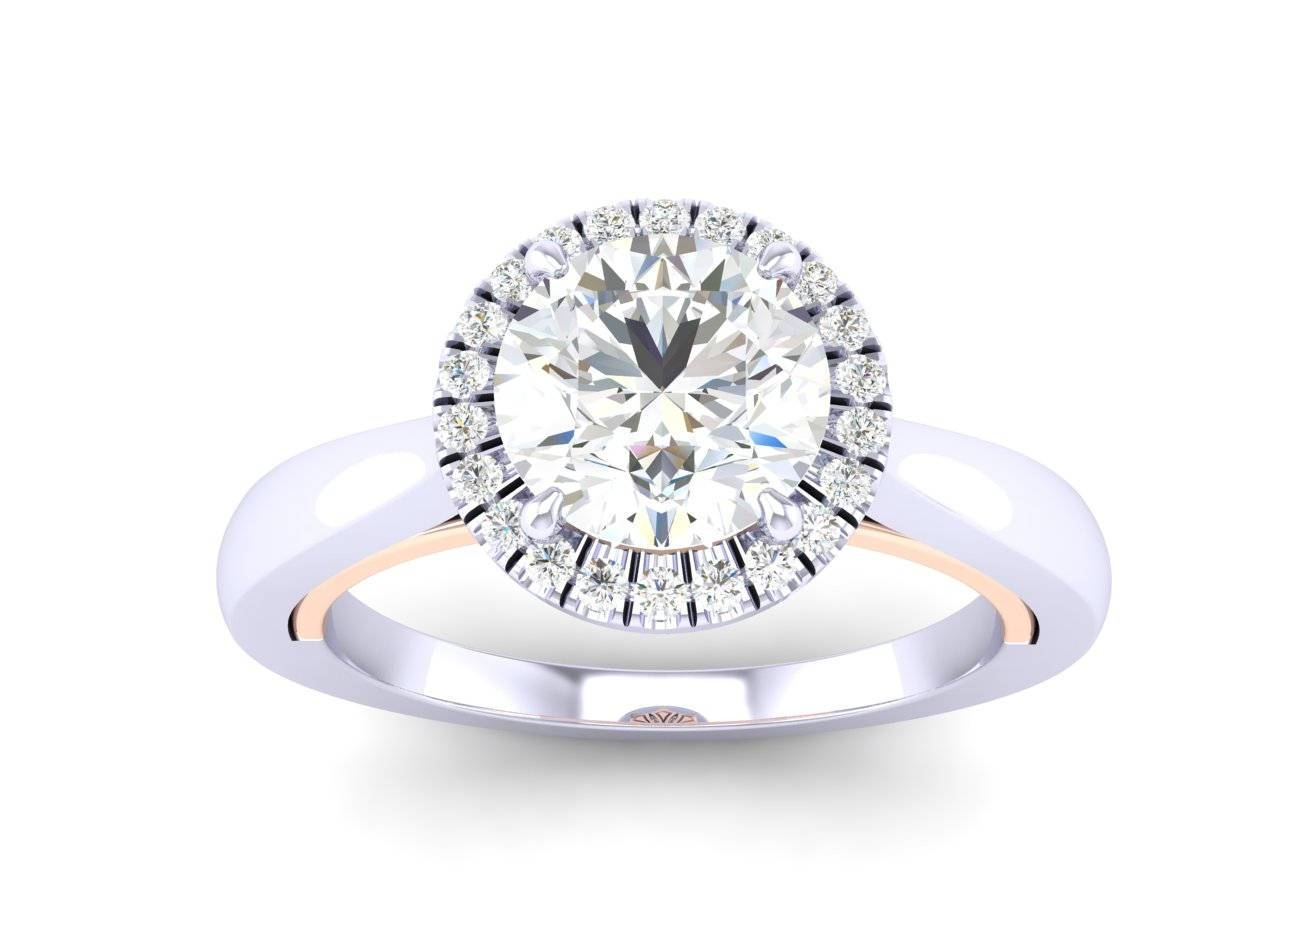 Petite 18K White/rose Gold Two Tone Halo Engagement Ring Throughout Recent Two Tone Anniversary Rings (View 17 of 25)